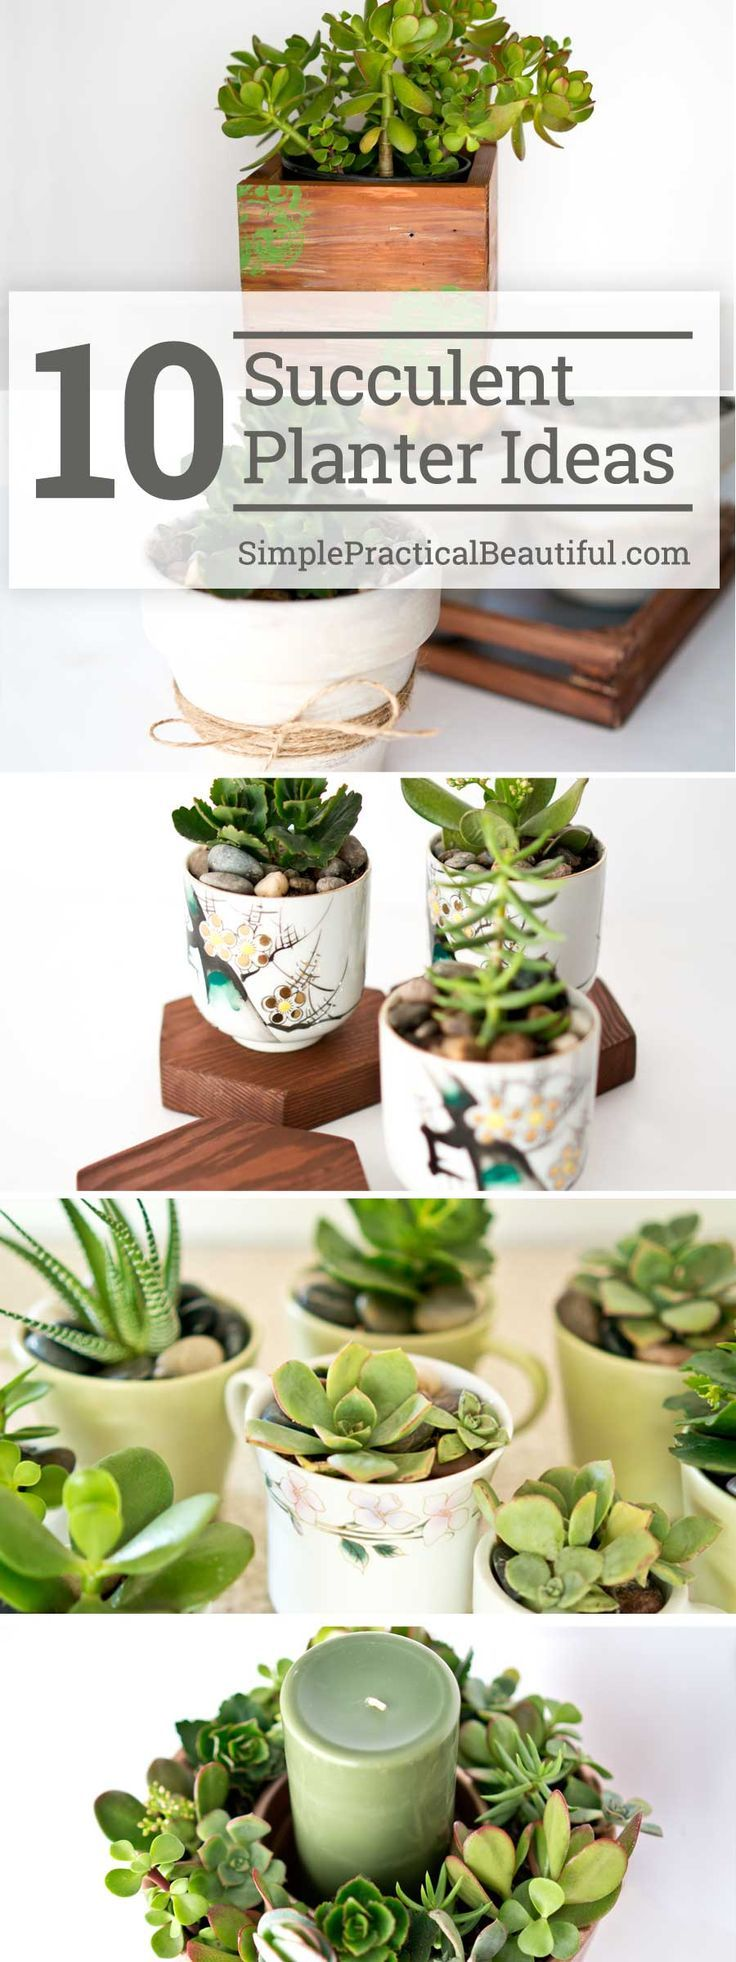 10 Succulent Planter Ideas